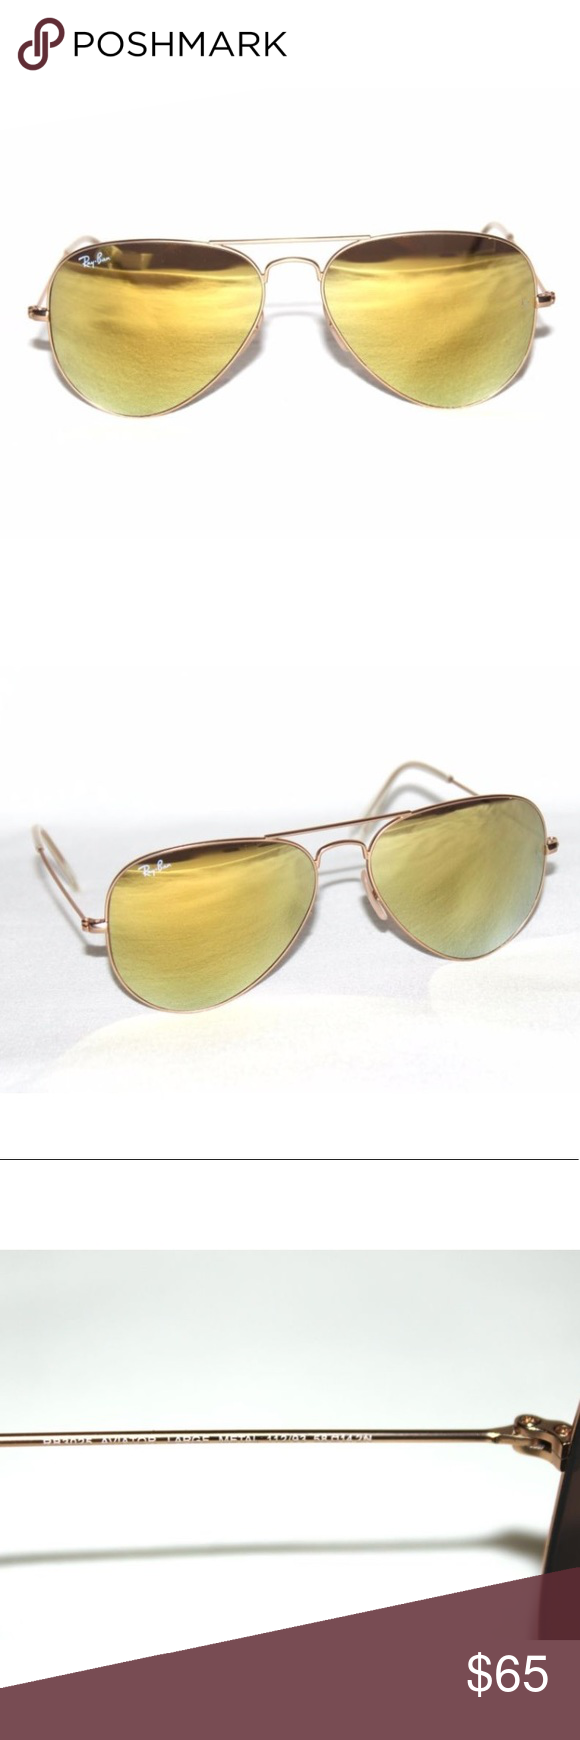 c303b1fc36 Authentic Ray-Ban RB3025 112 93 Gold Flash Authentic - New Ray-Ban RB3025  112 93 Gold   Gold Flash Mirror Aviator Sunglasses 58mm 3025.